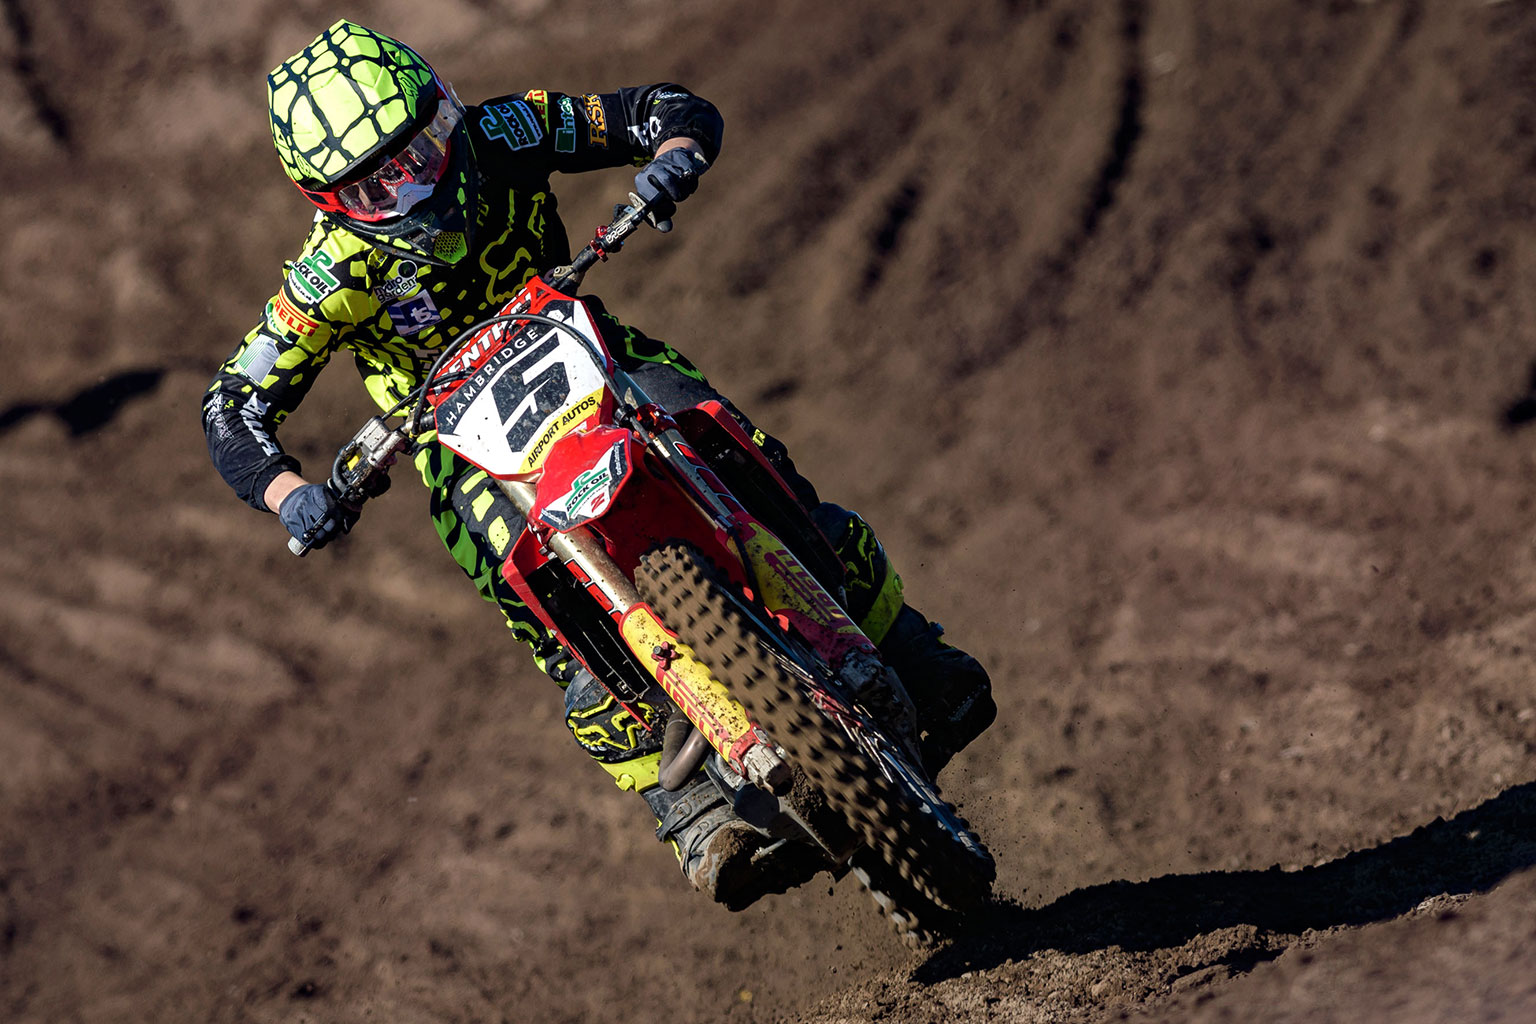 Irwin_MX_Nats_R1_preston_honda_NL241